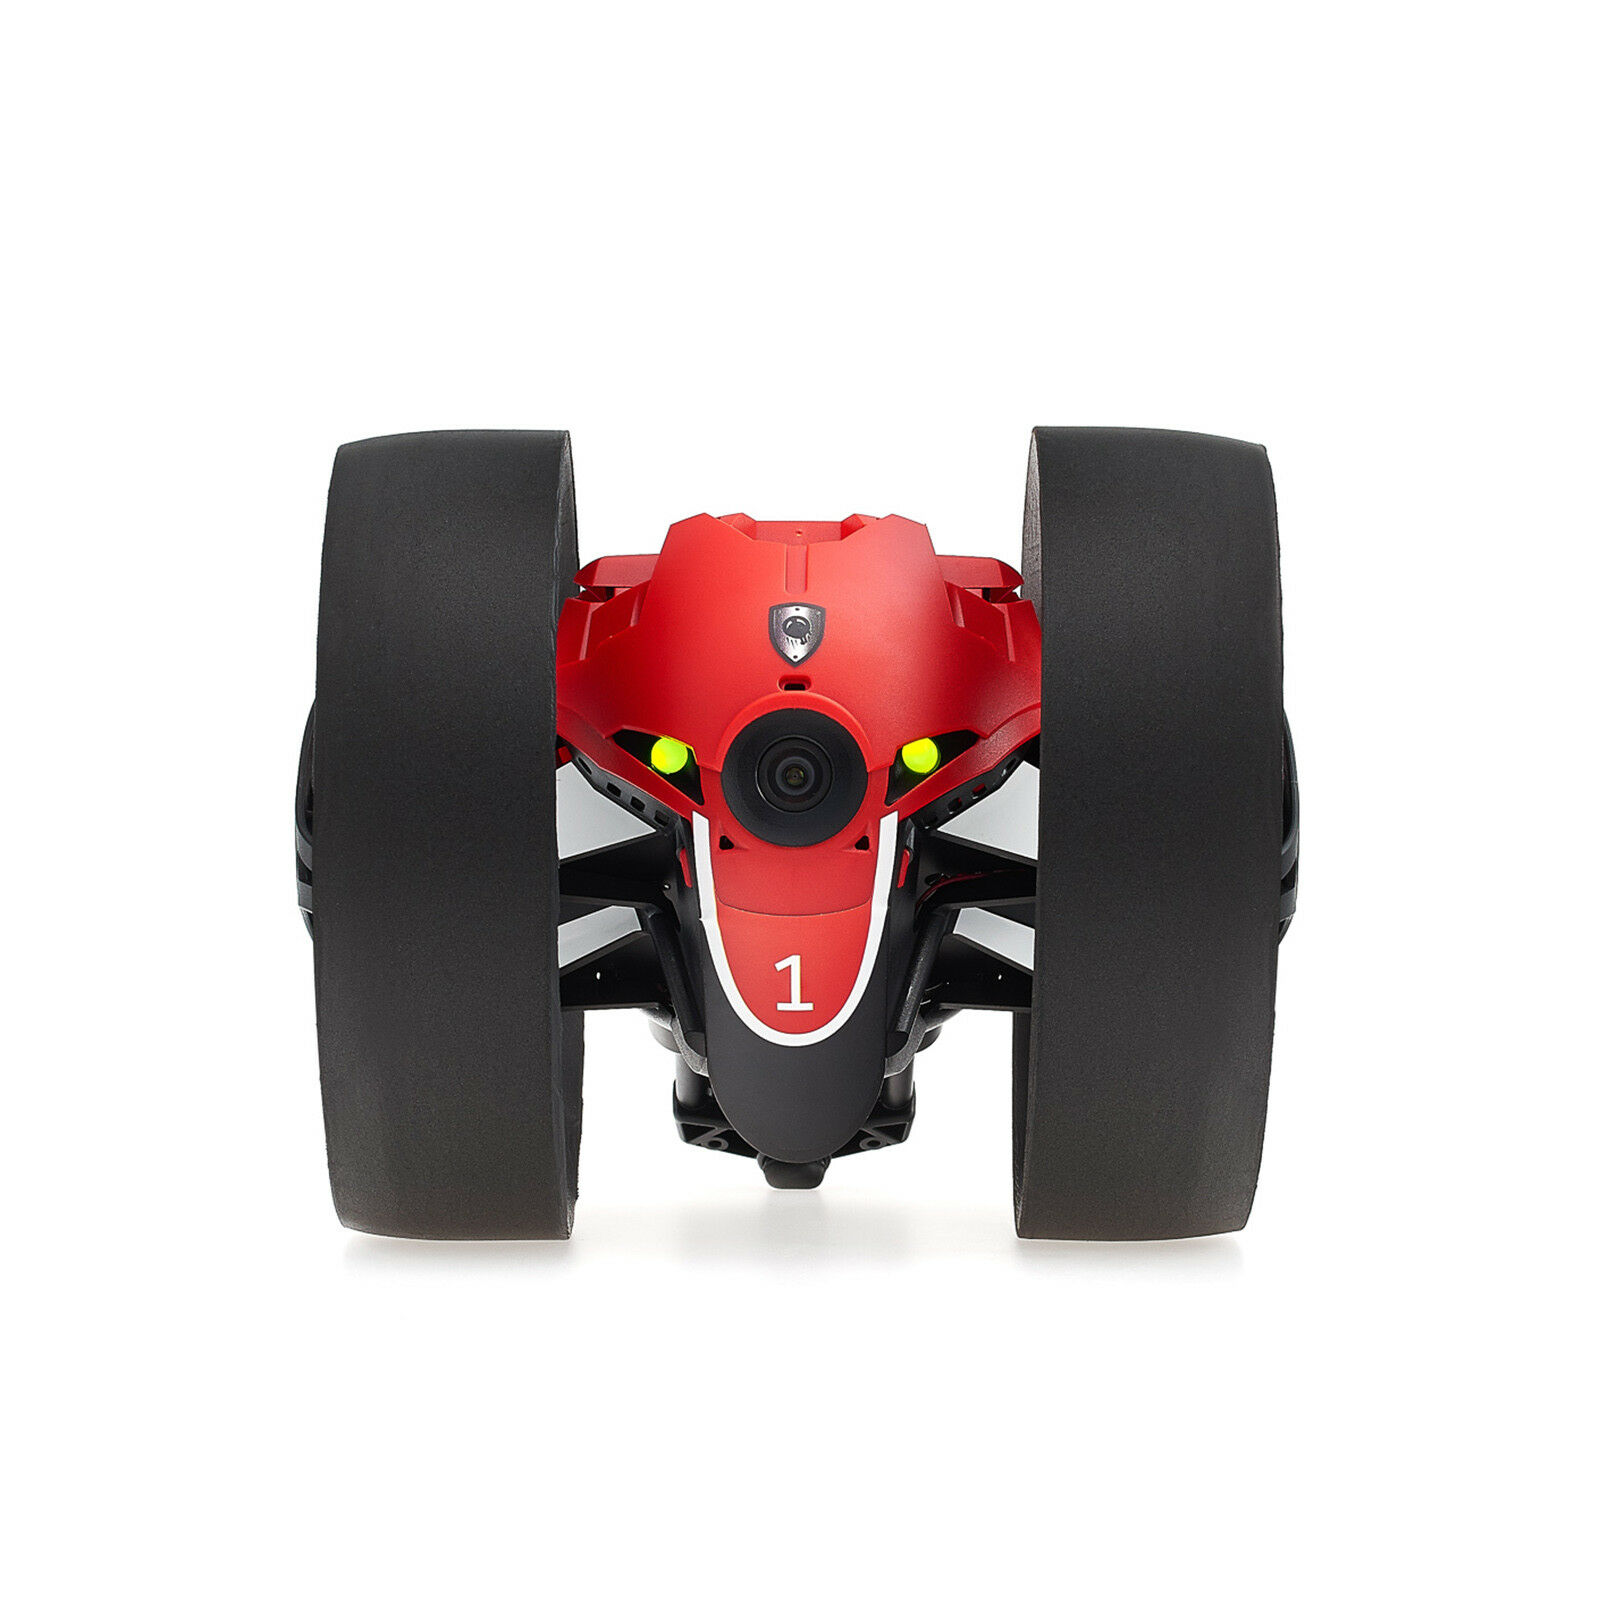 Parrot Jumping Race Mini Drone Wi-Fi Controlled RC Vehicle w/ Camera & Speaker